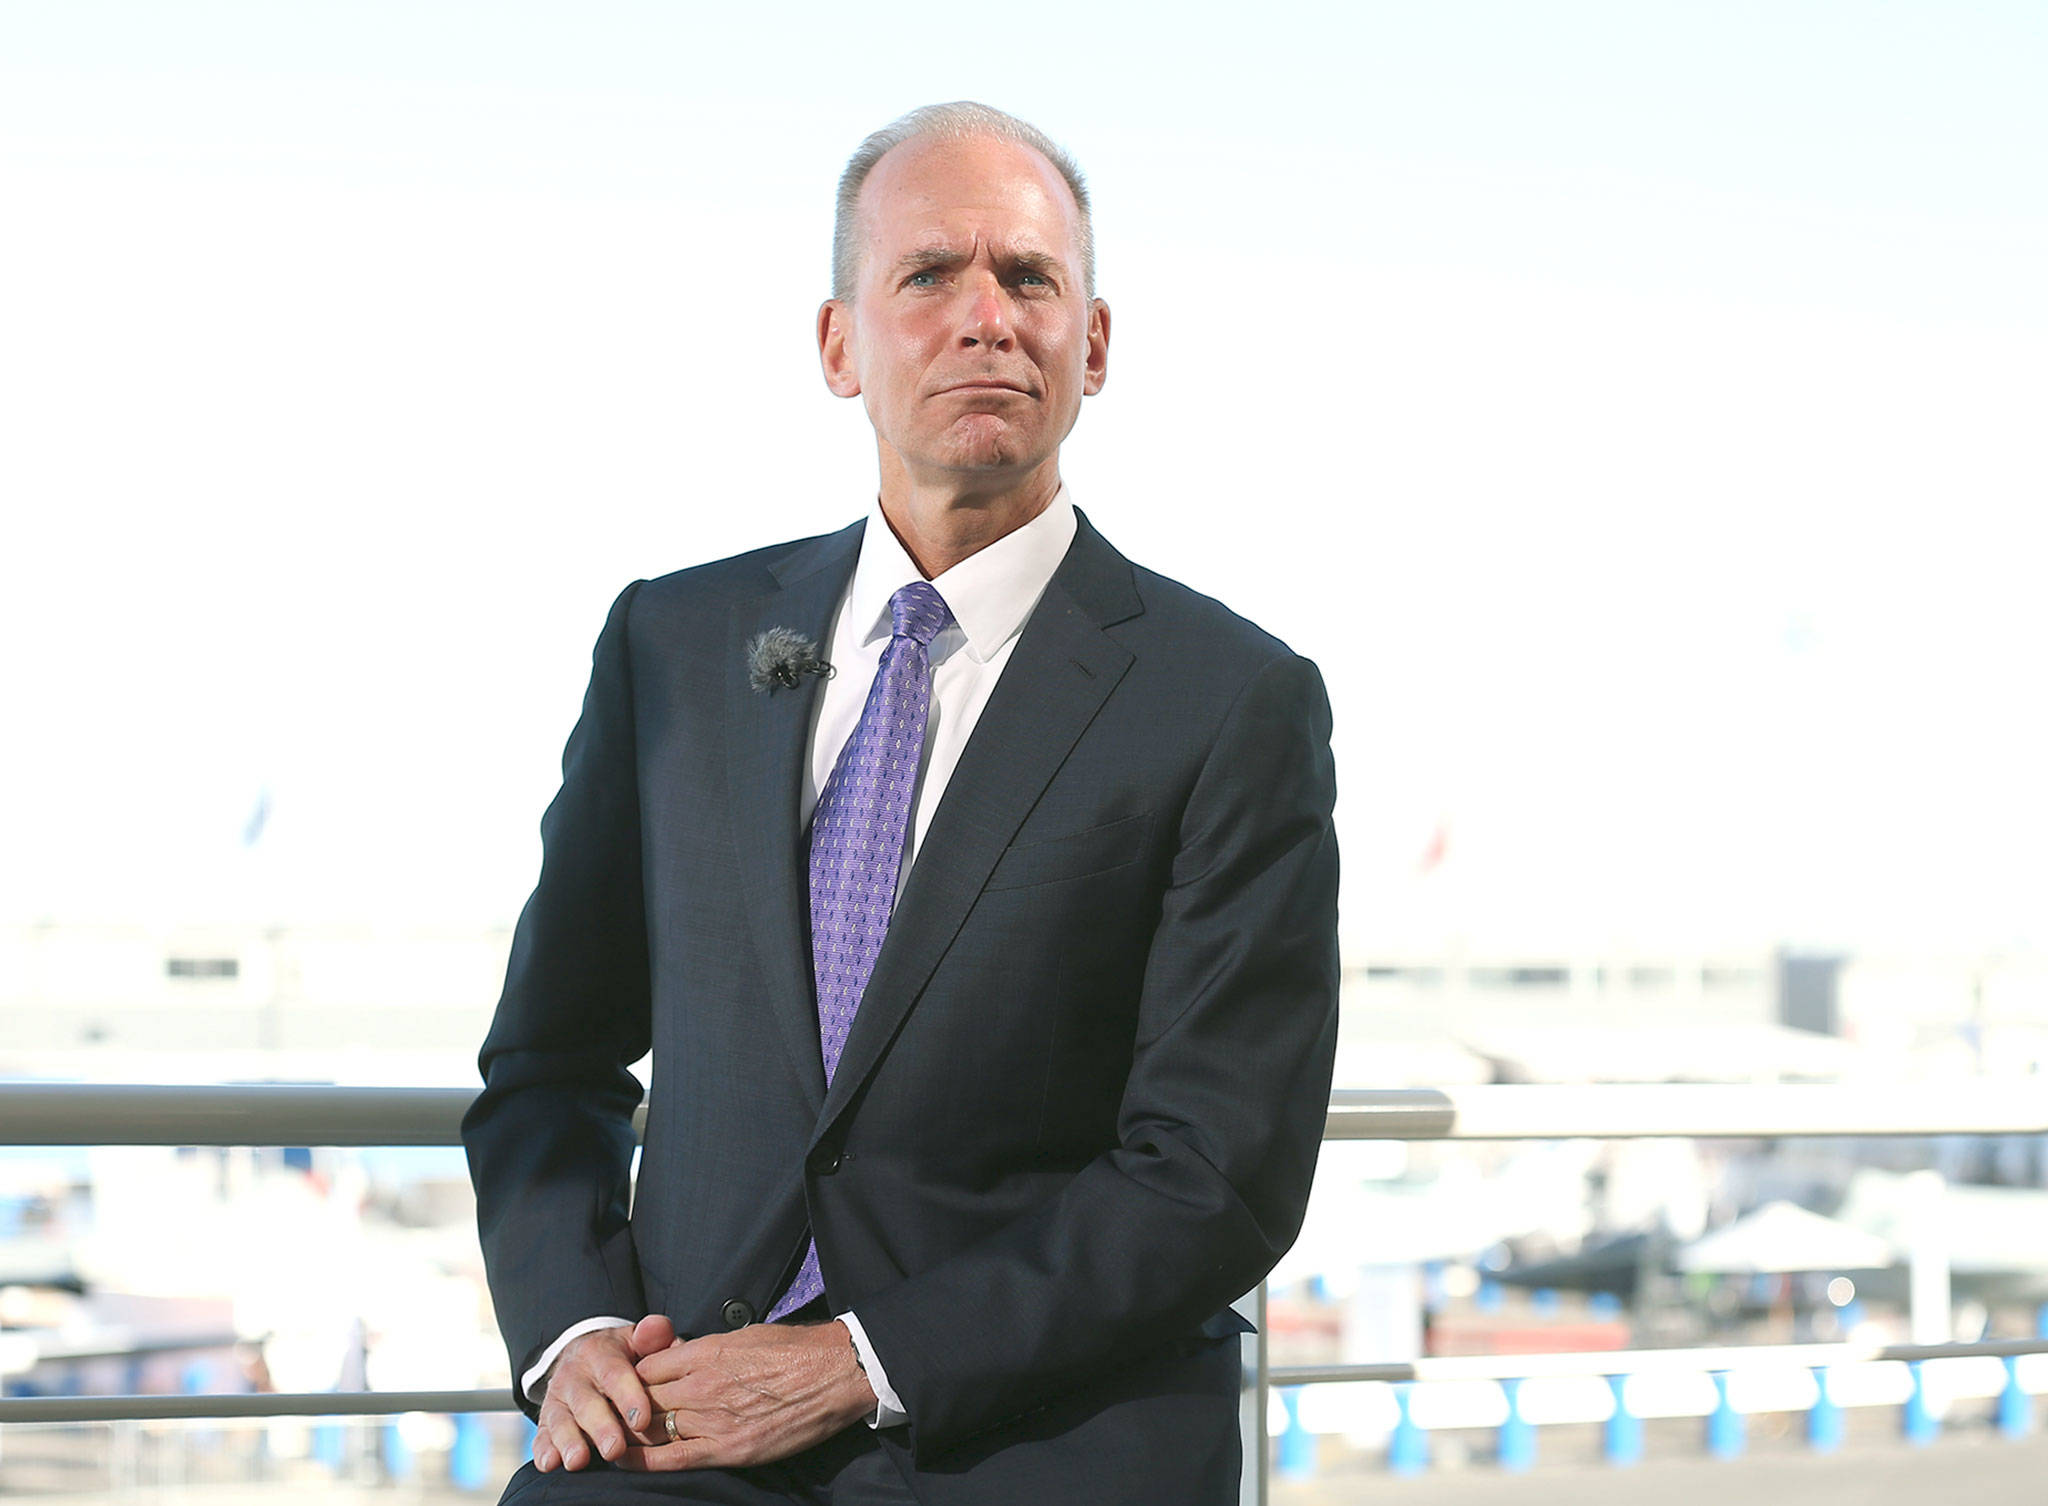 Boeing CEO Dennis Muilenburg during a television interview in 2017. (Marlene Awaad / Bloomberg News)